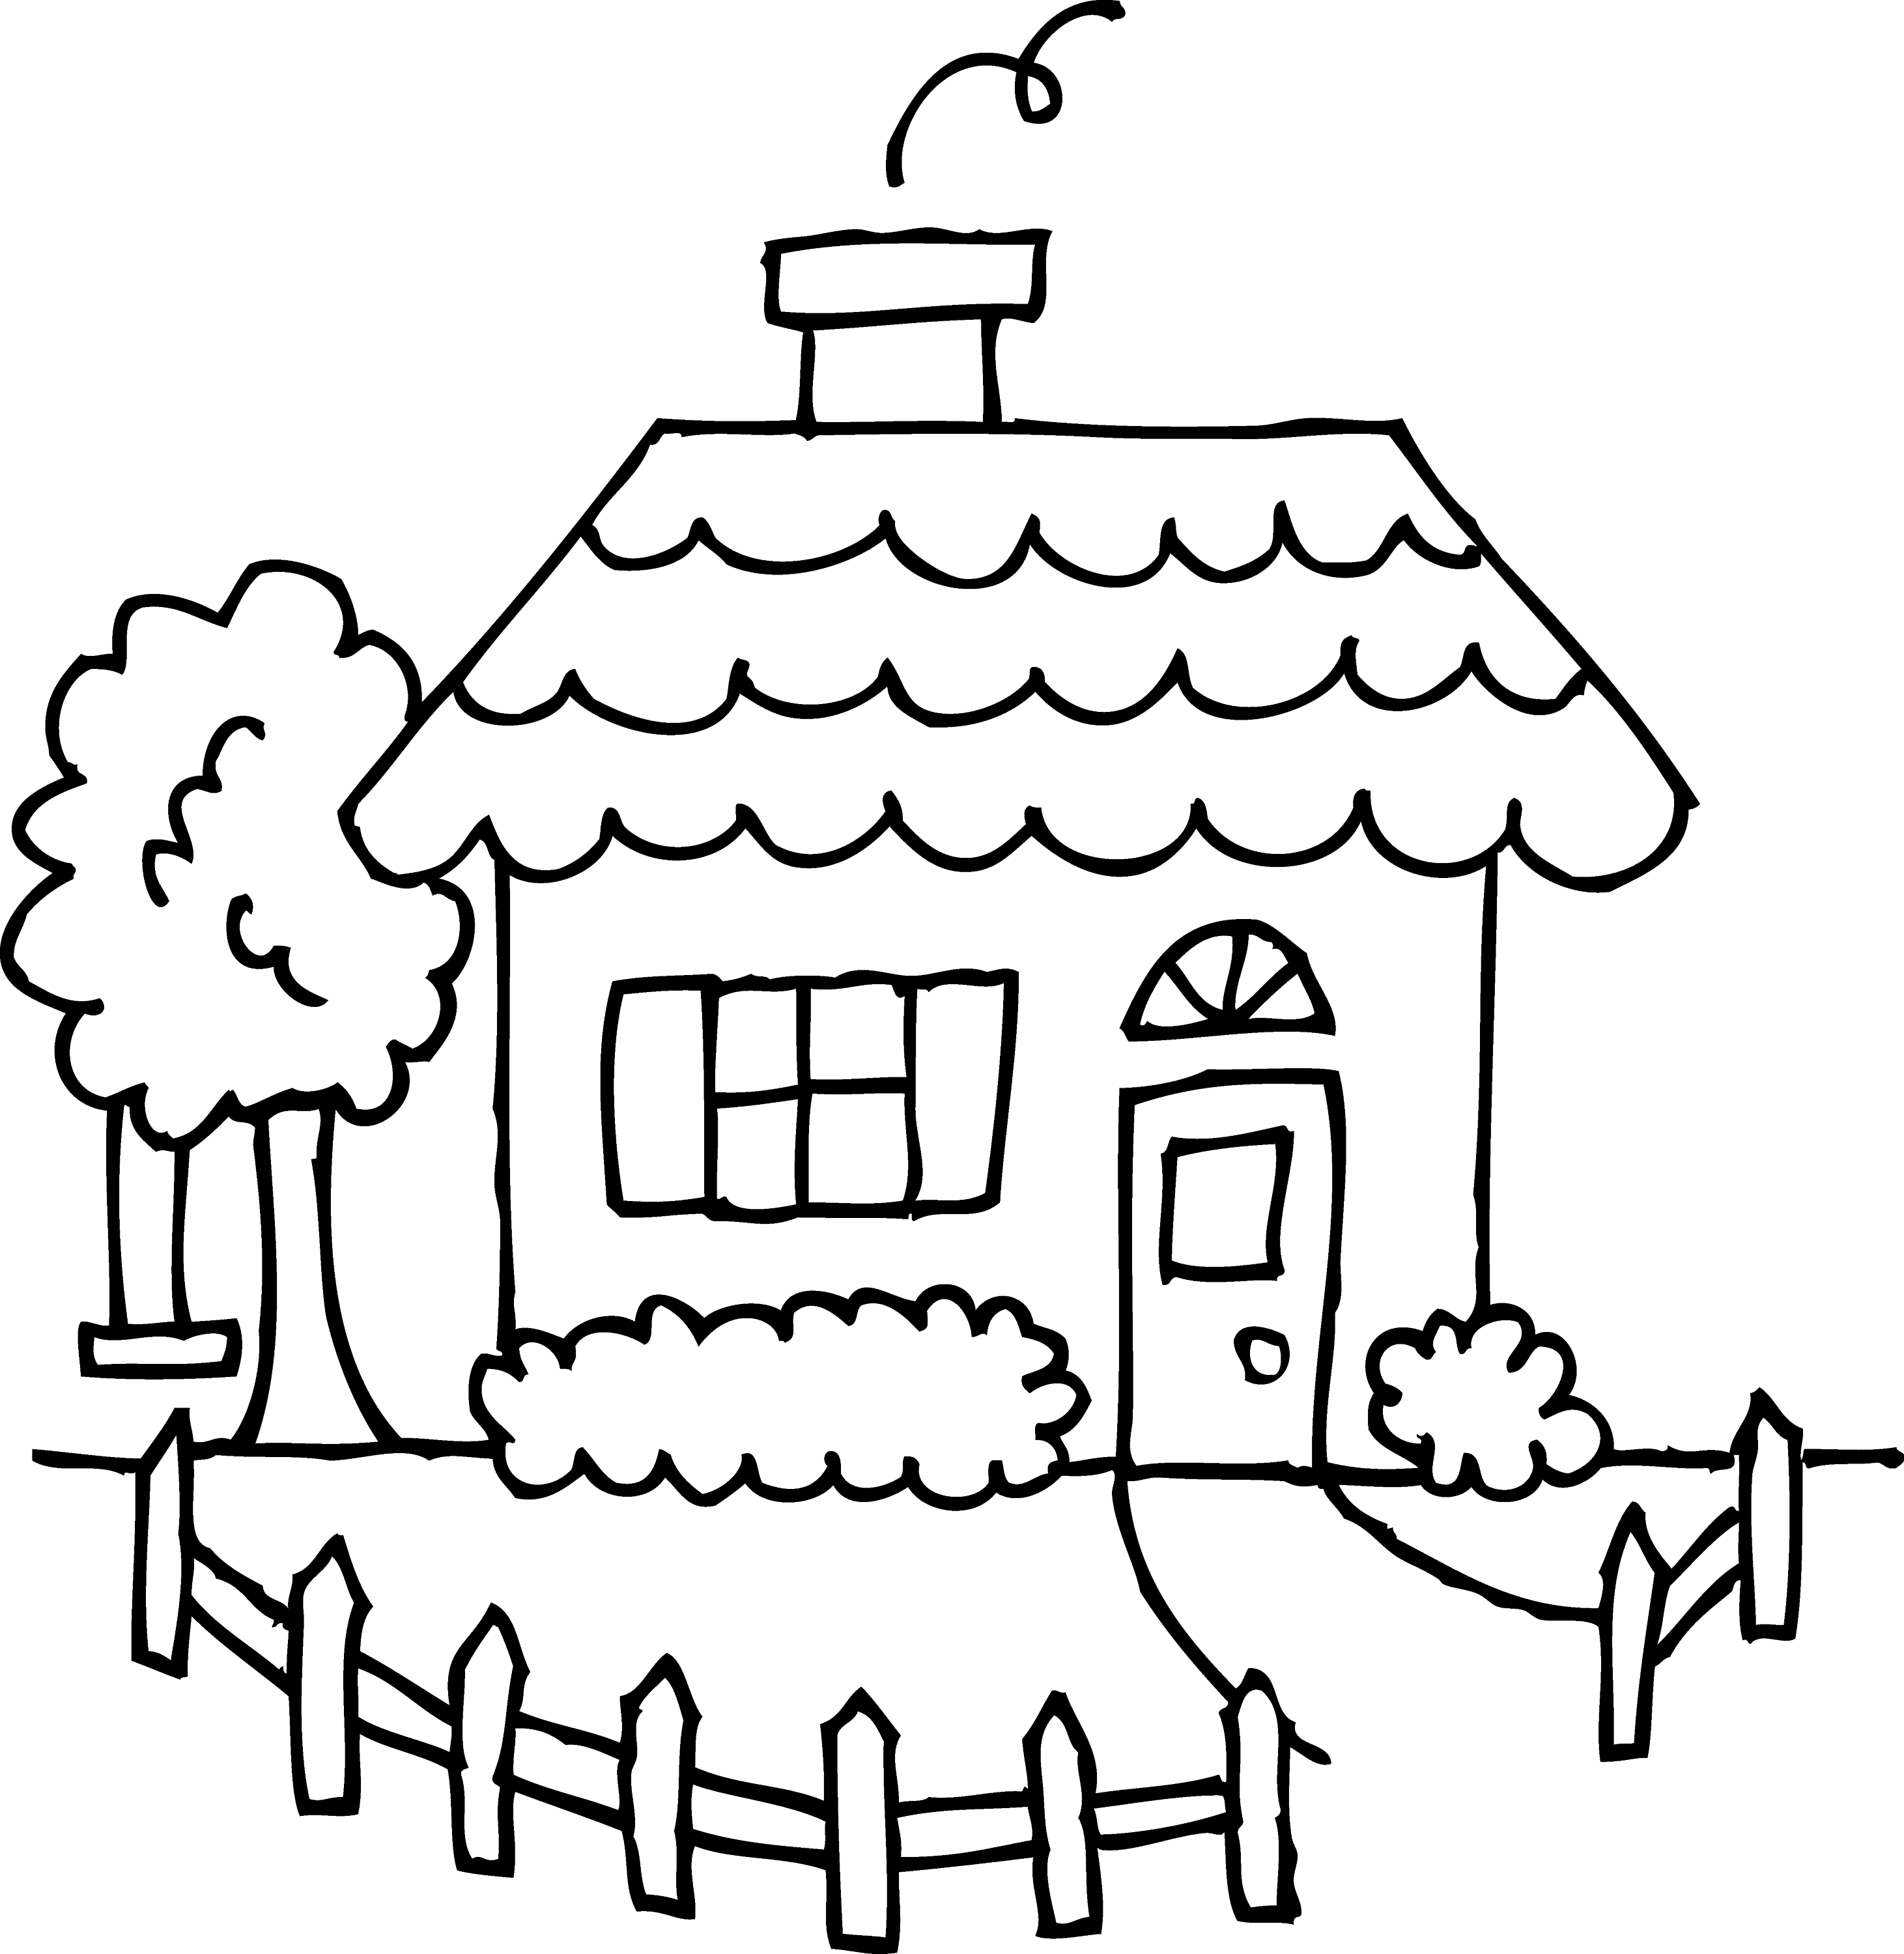 pictures of houses to color house coloring pages to download and print for free houses of pictures color to